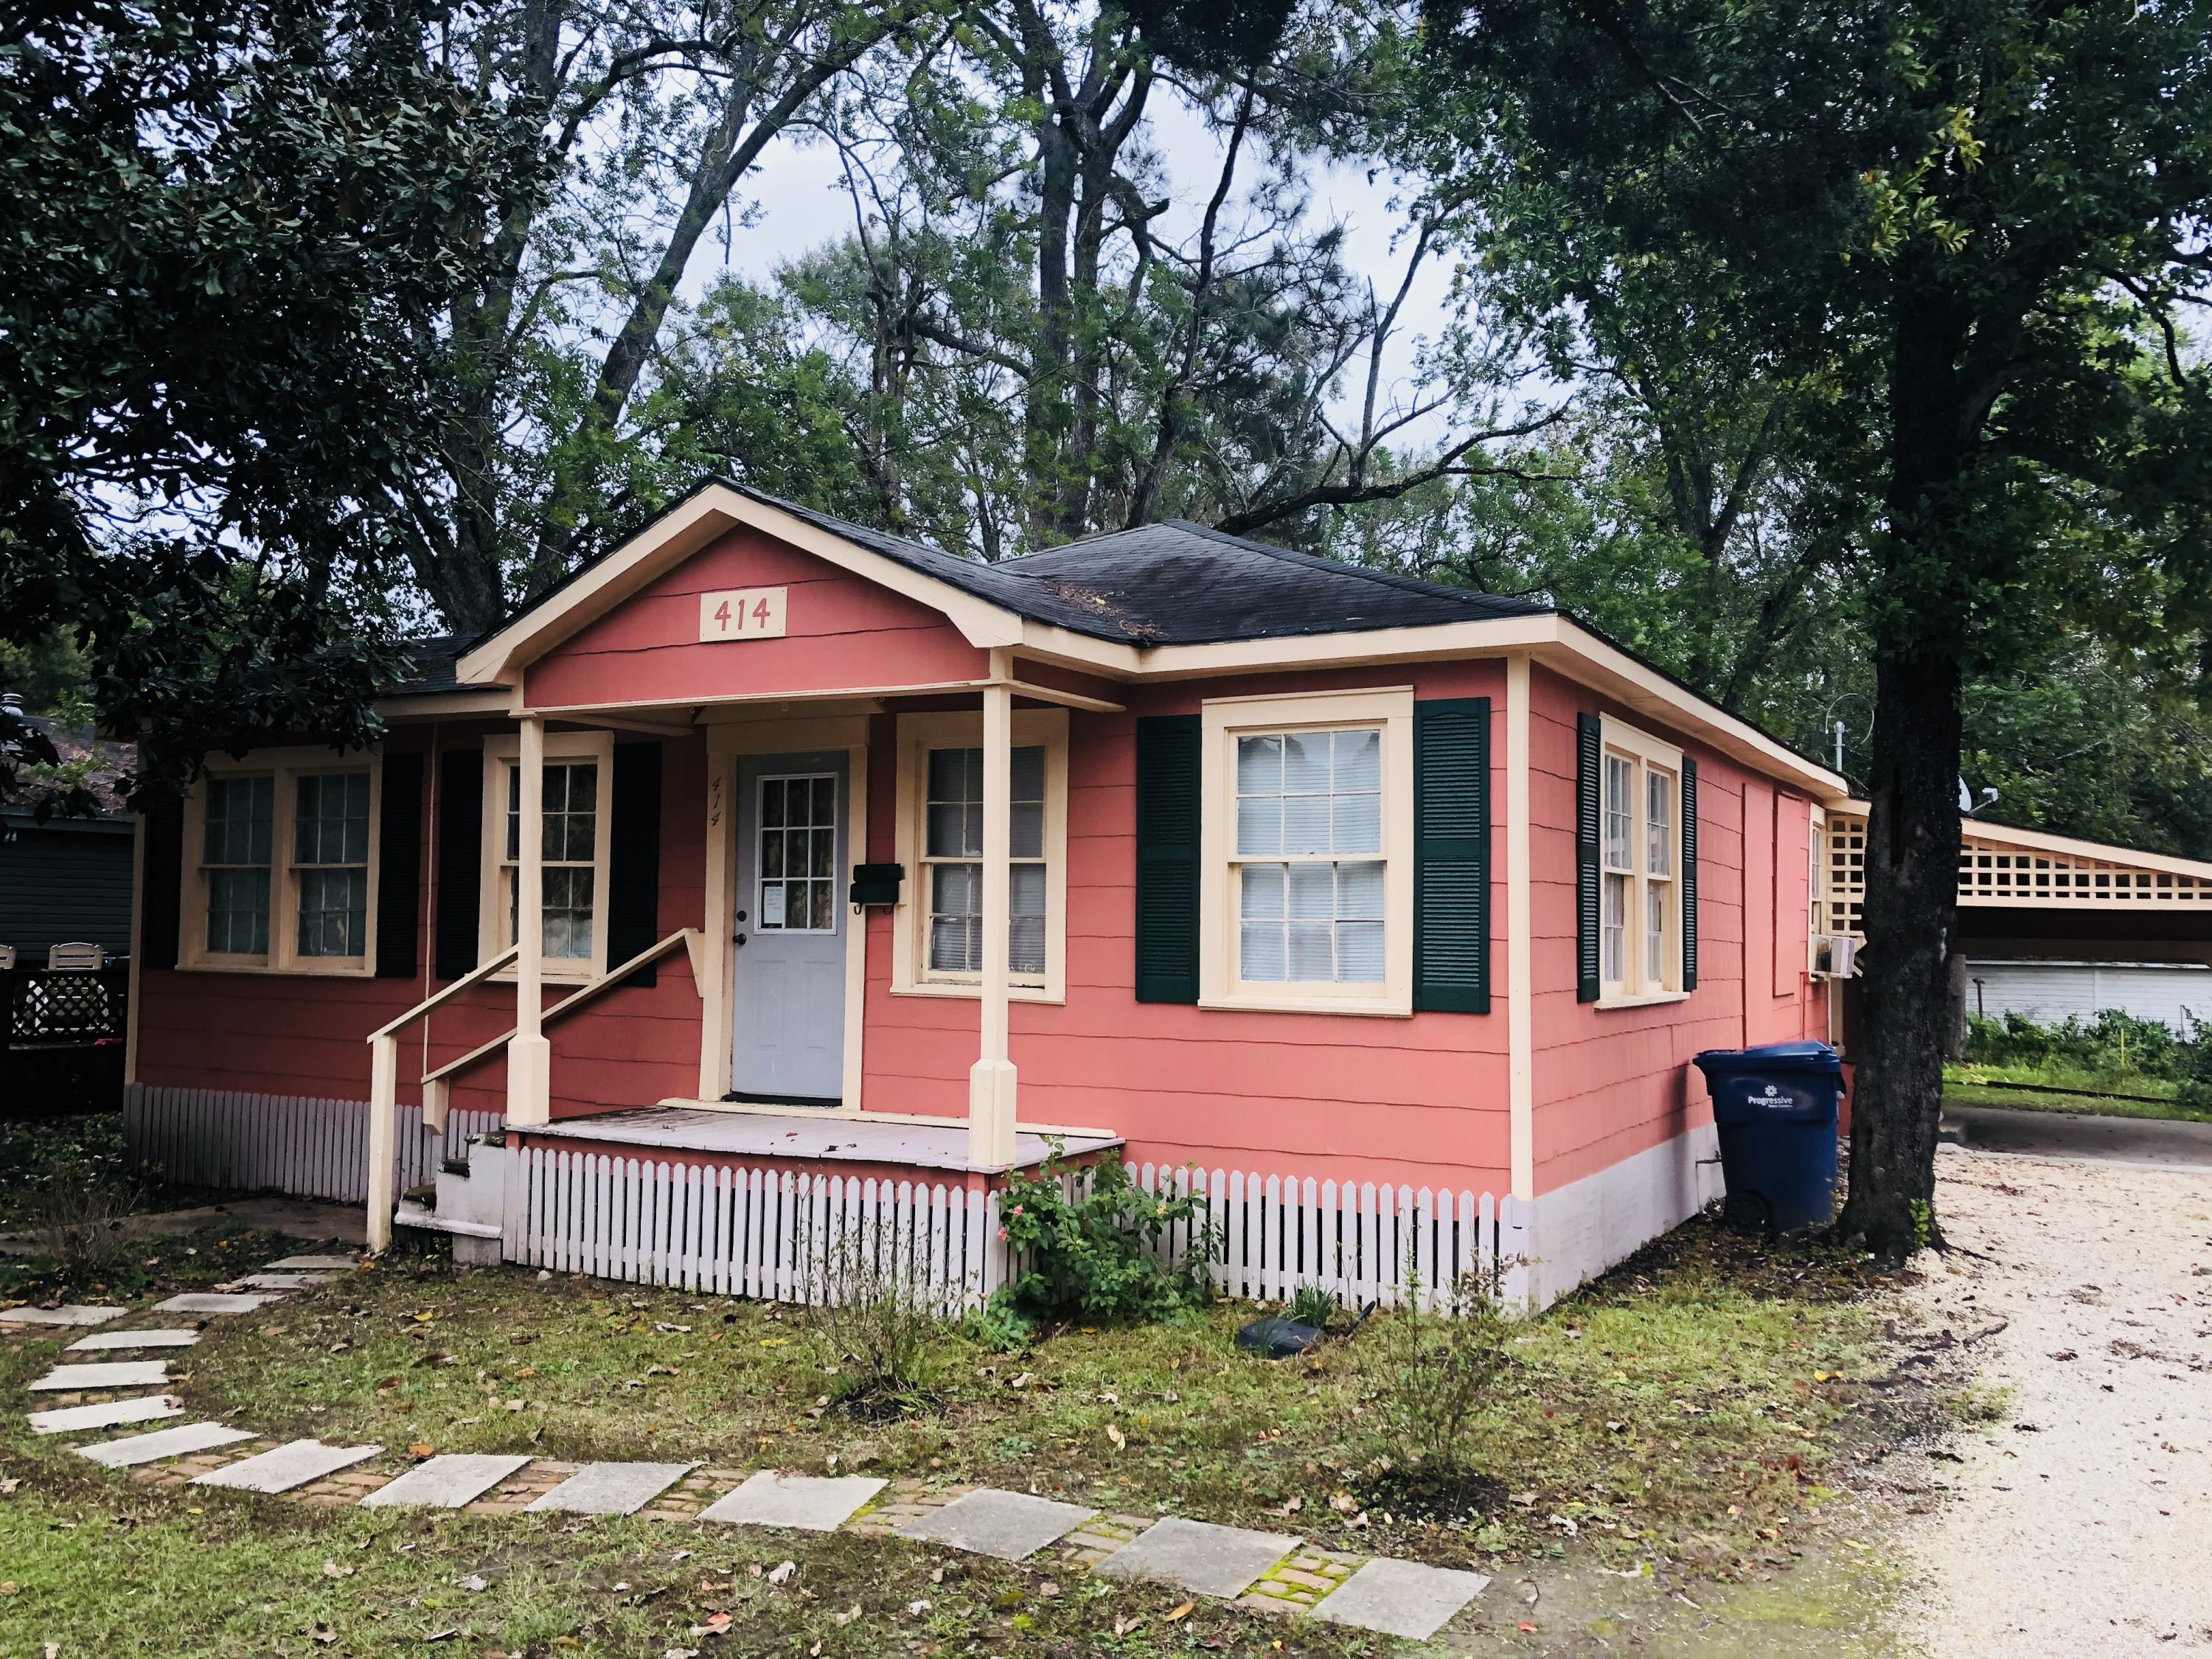 DeRidder home for sale, 414 N Texas St, DeRidder LA - $75,000